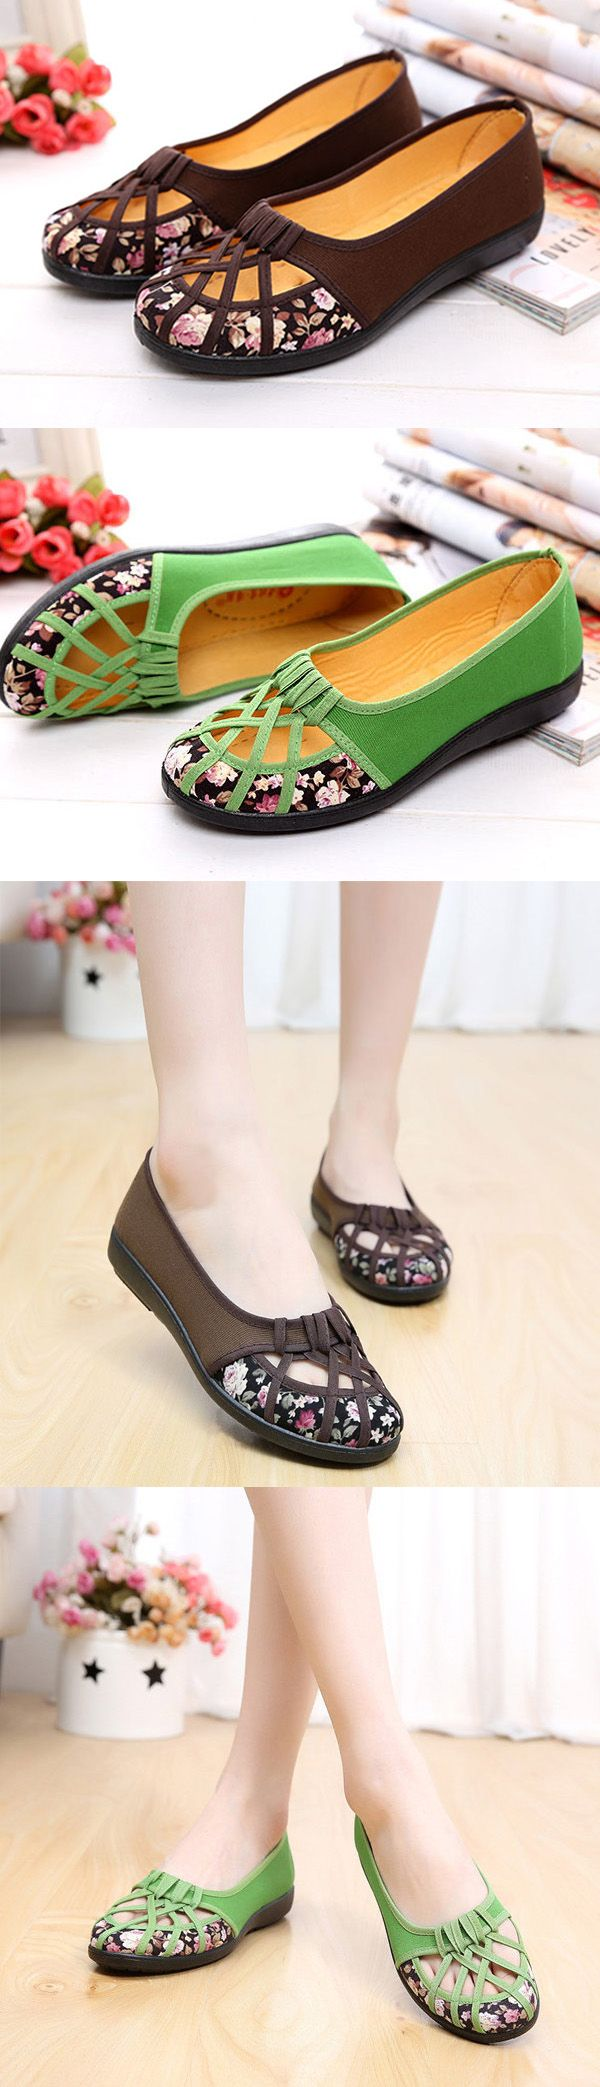 US$11.03 Hollow Out Flower Print Breathable Slip On Flat Loafers_Flower Shoes_Summer Outfits